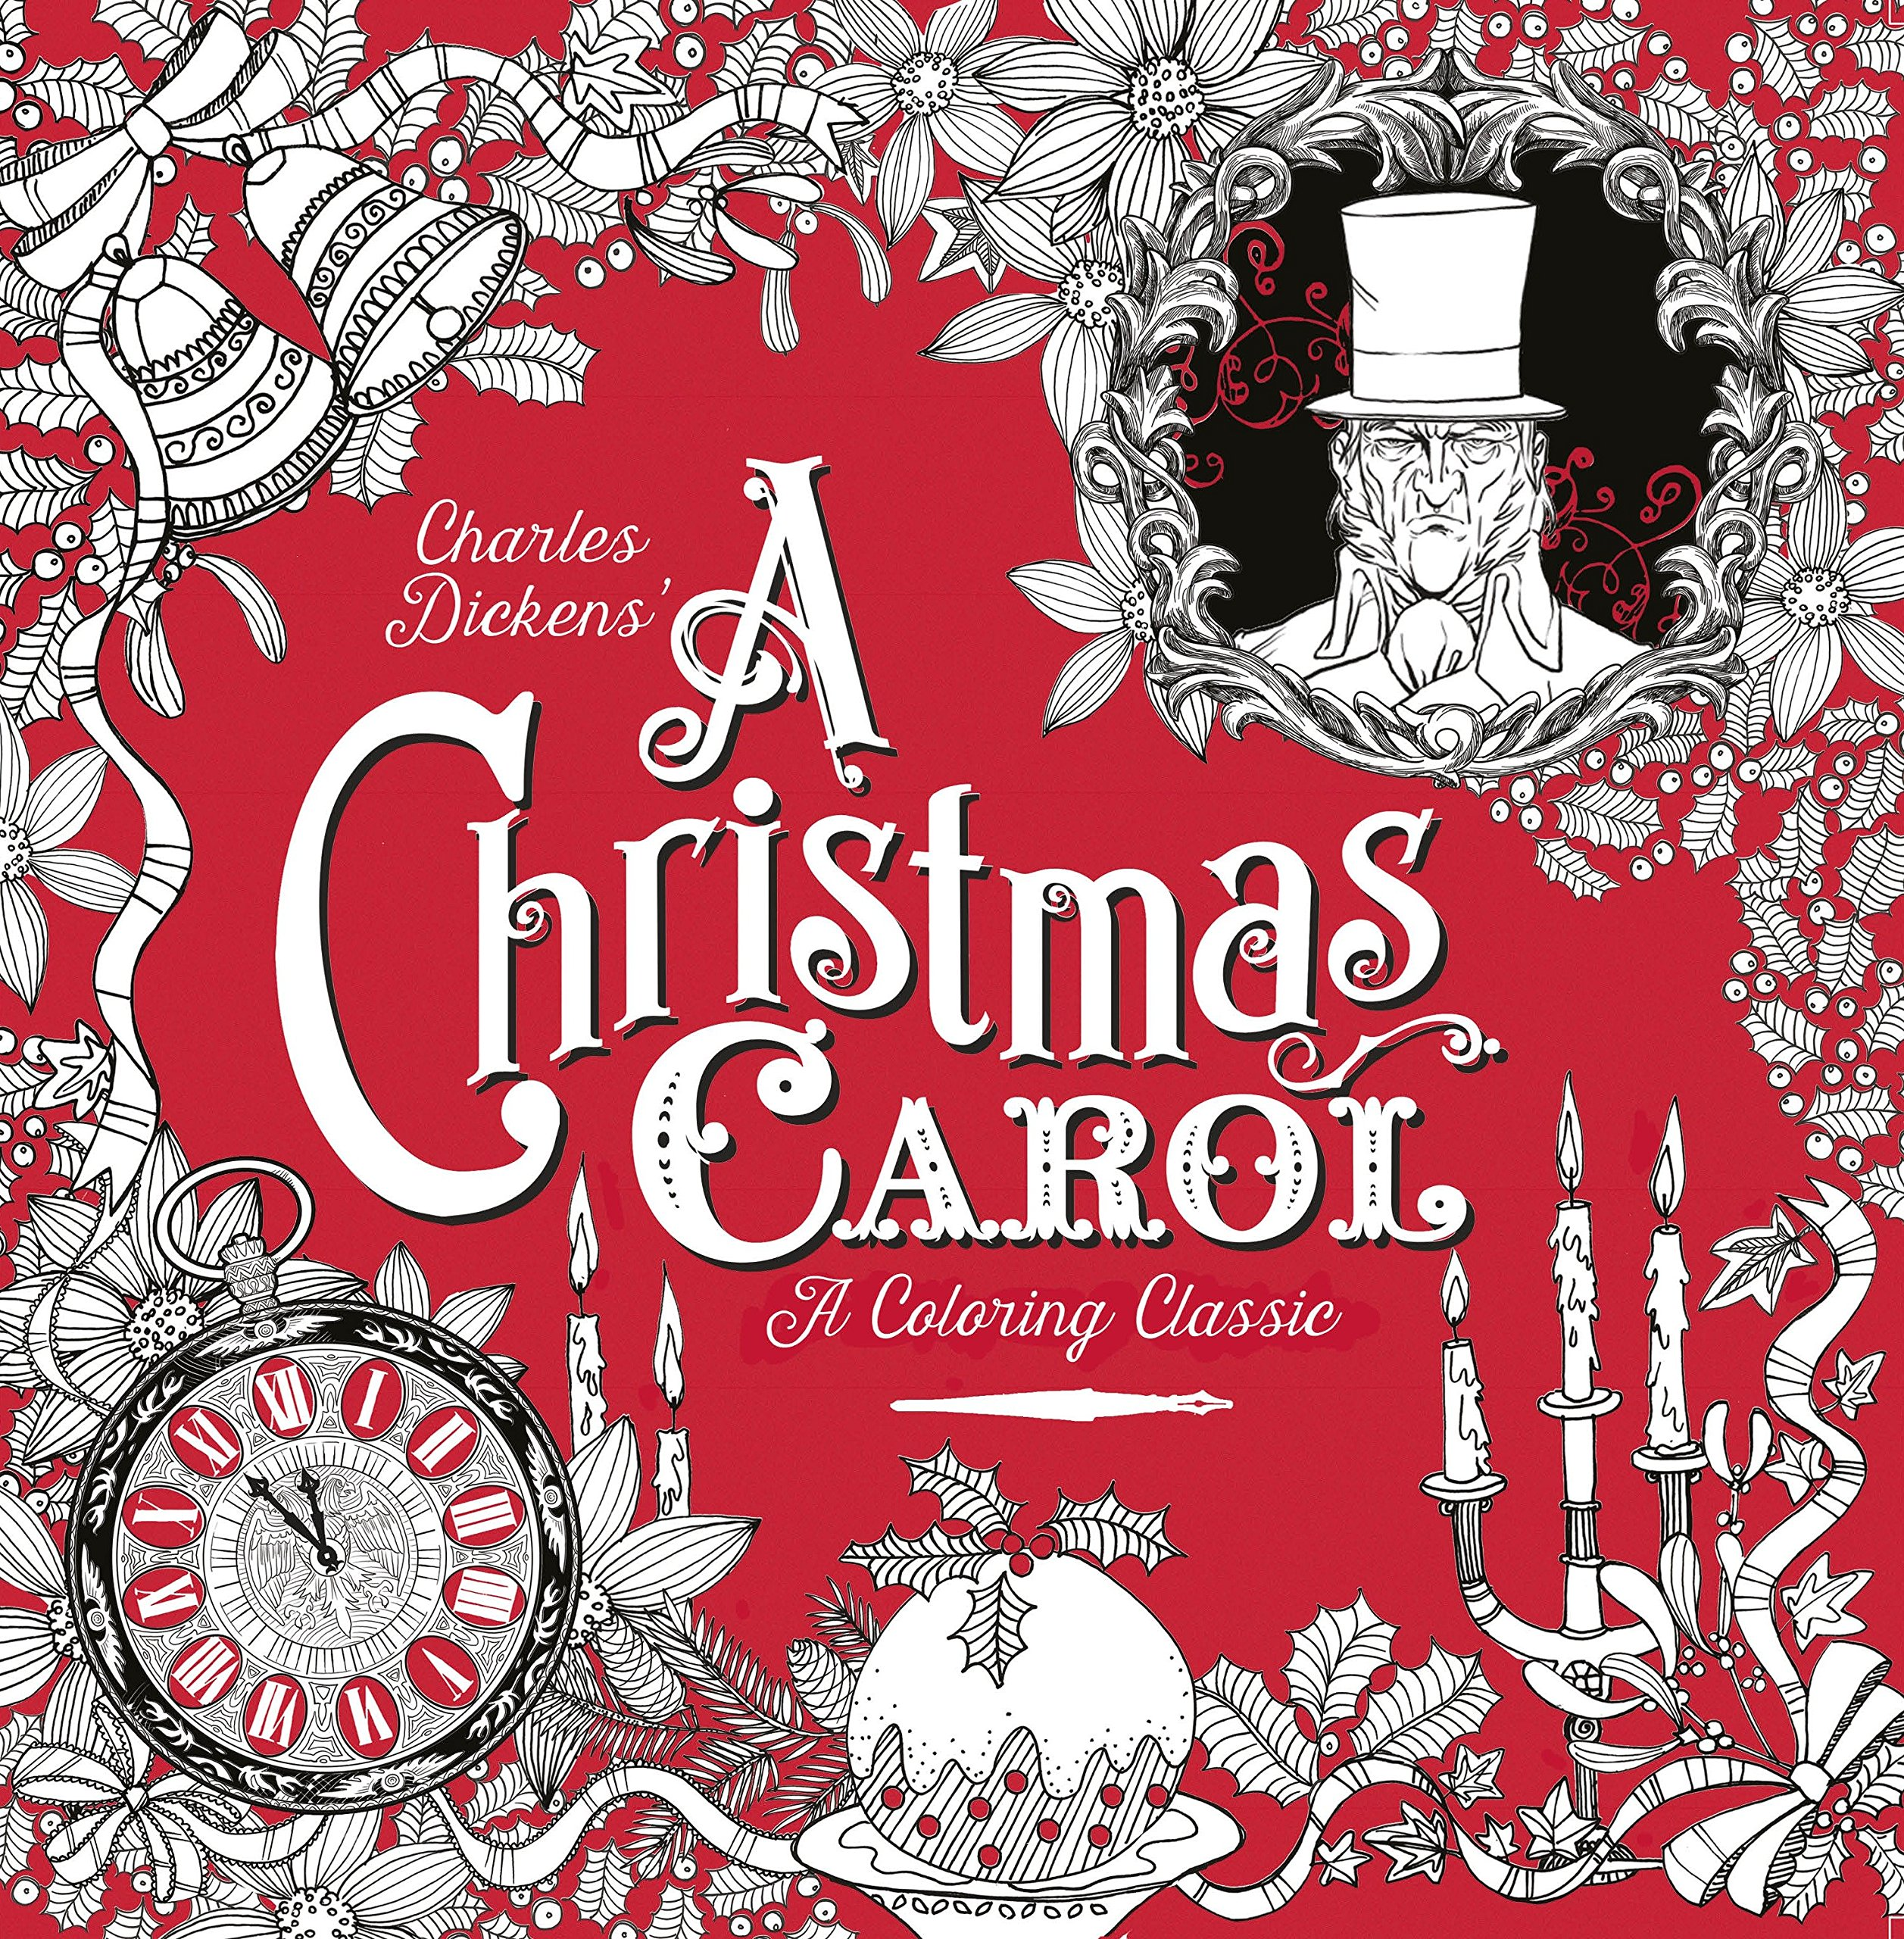 Amazon.com: A Christmas Carol: A Coloring Classic (9781524713195 ...